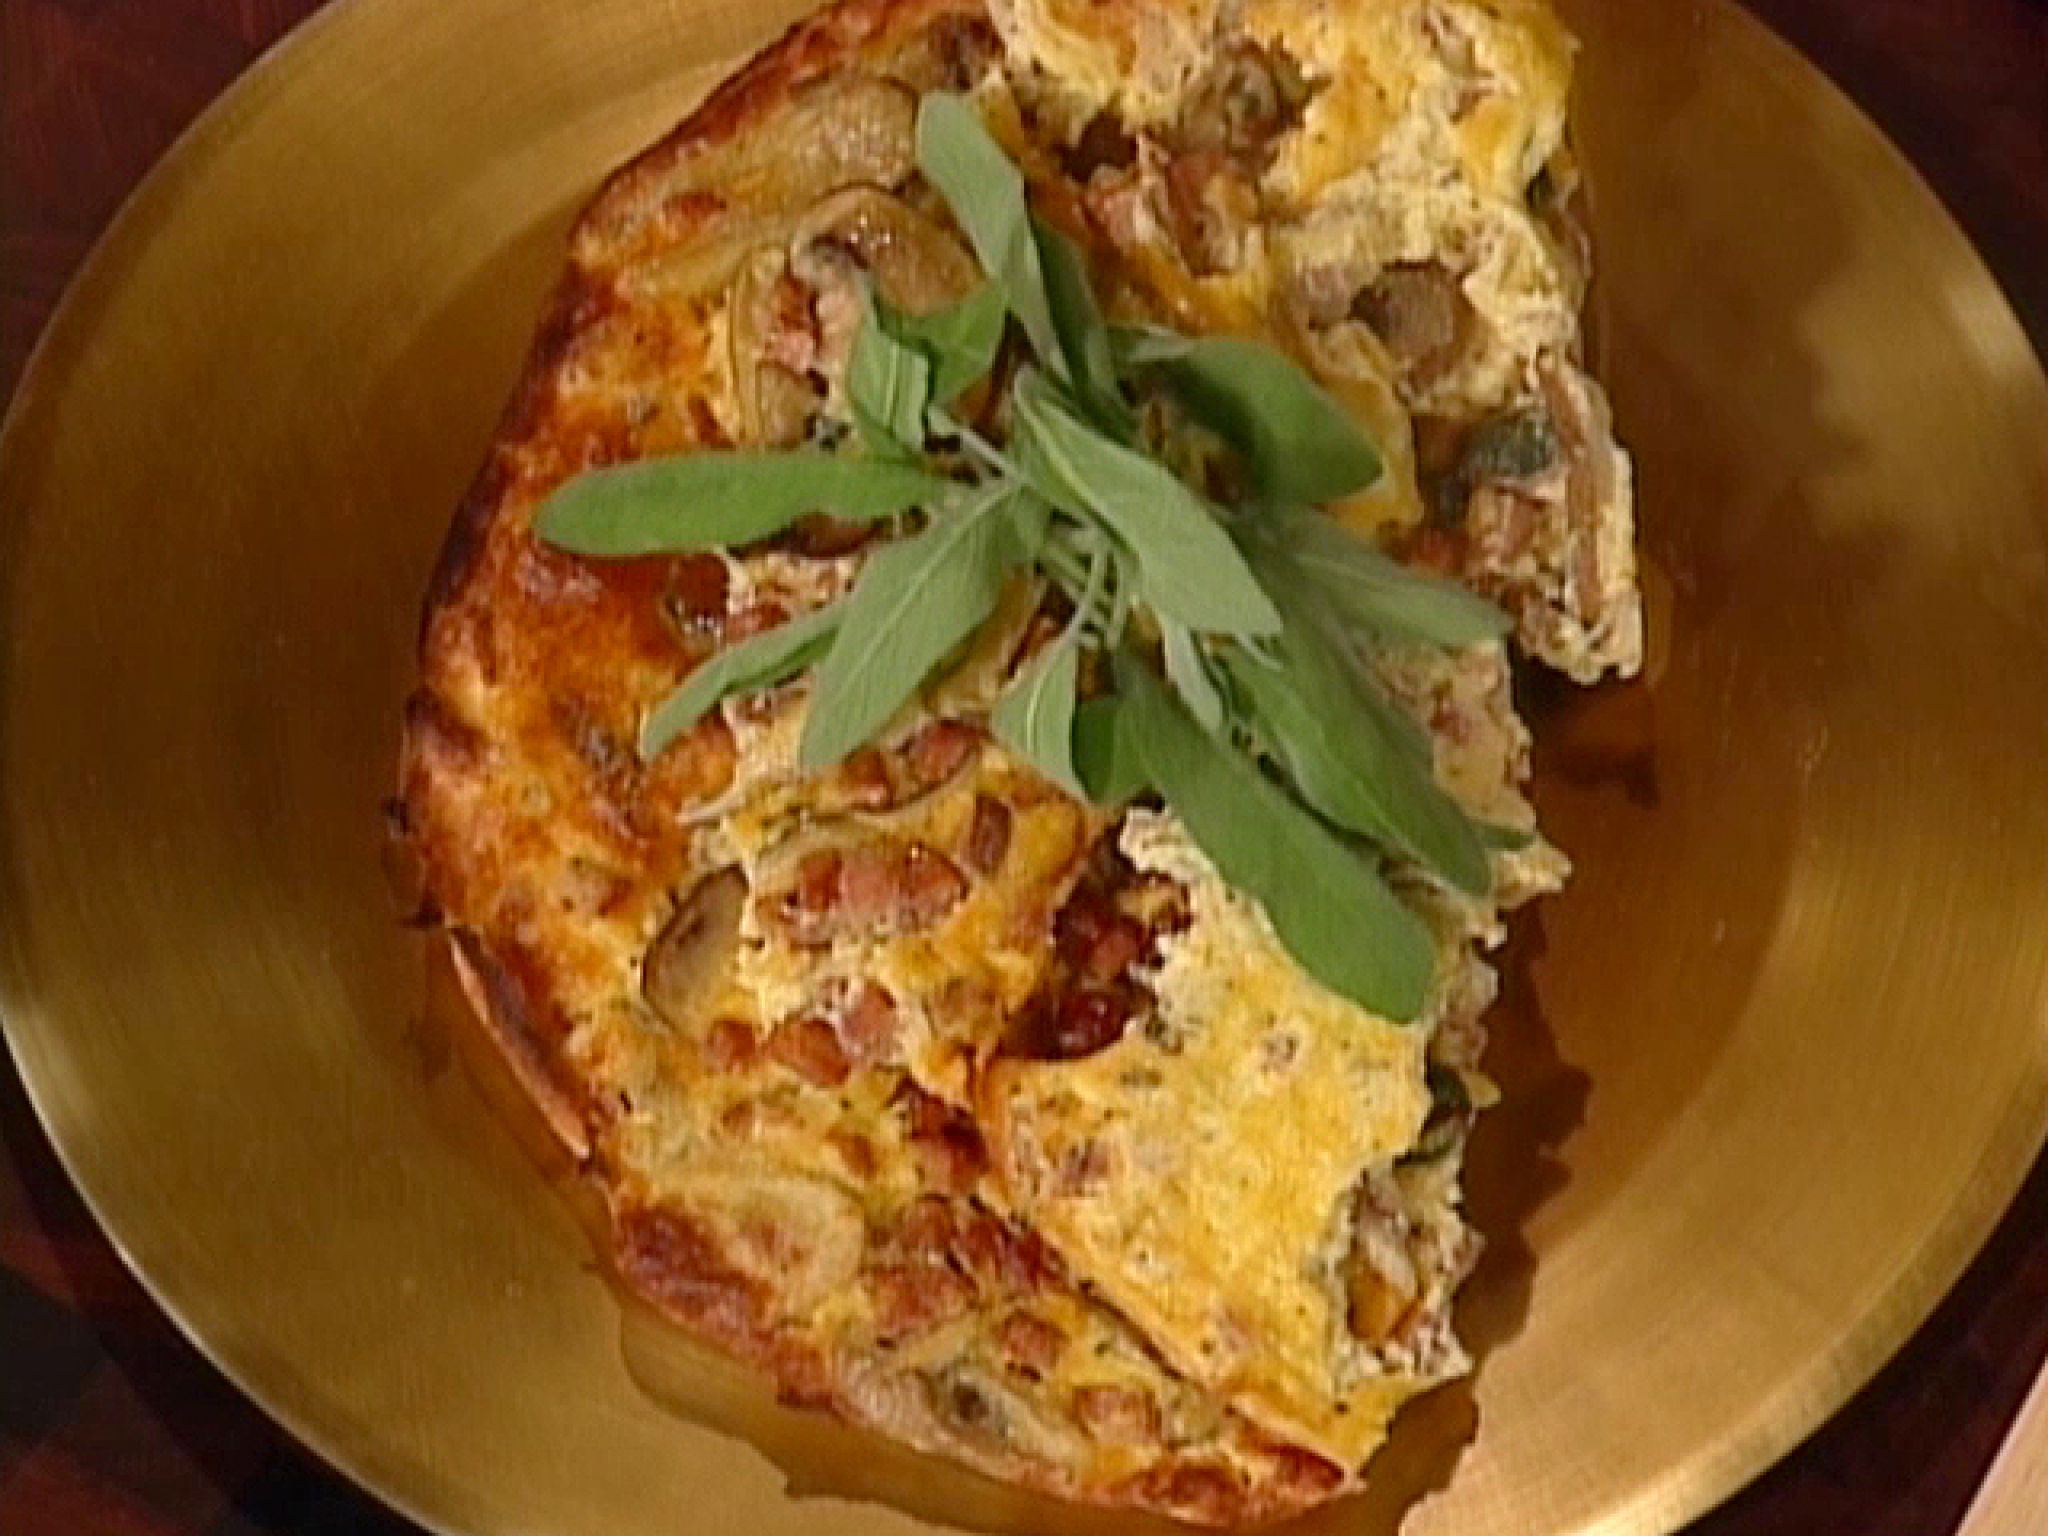 Wild mushroom and sausage frittata recipe from emeril lagasse via wild mushroom and sausage frittata recipe from emeril lagasse via food network forumfinder Gallery